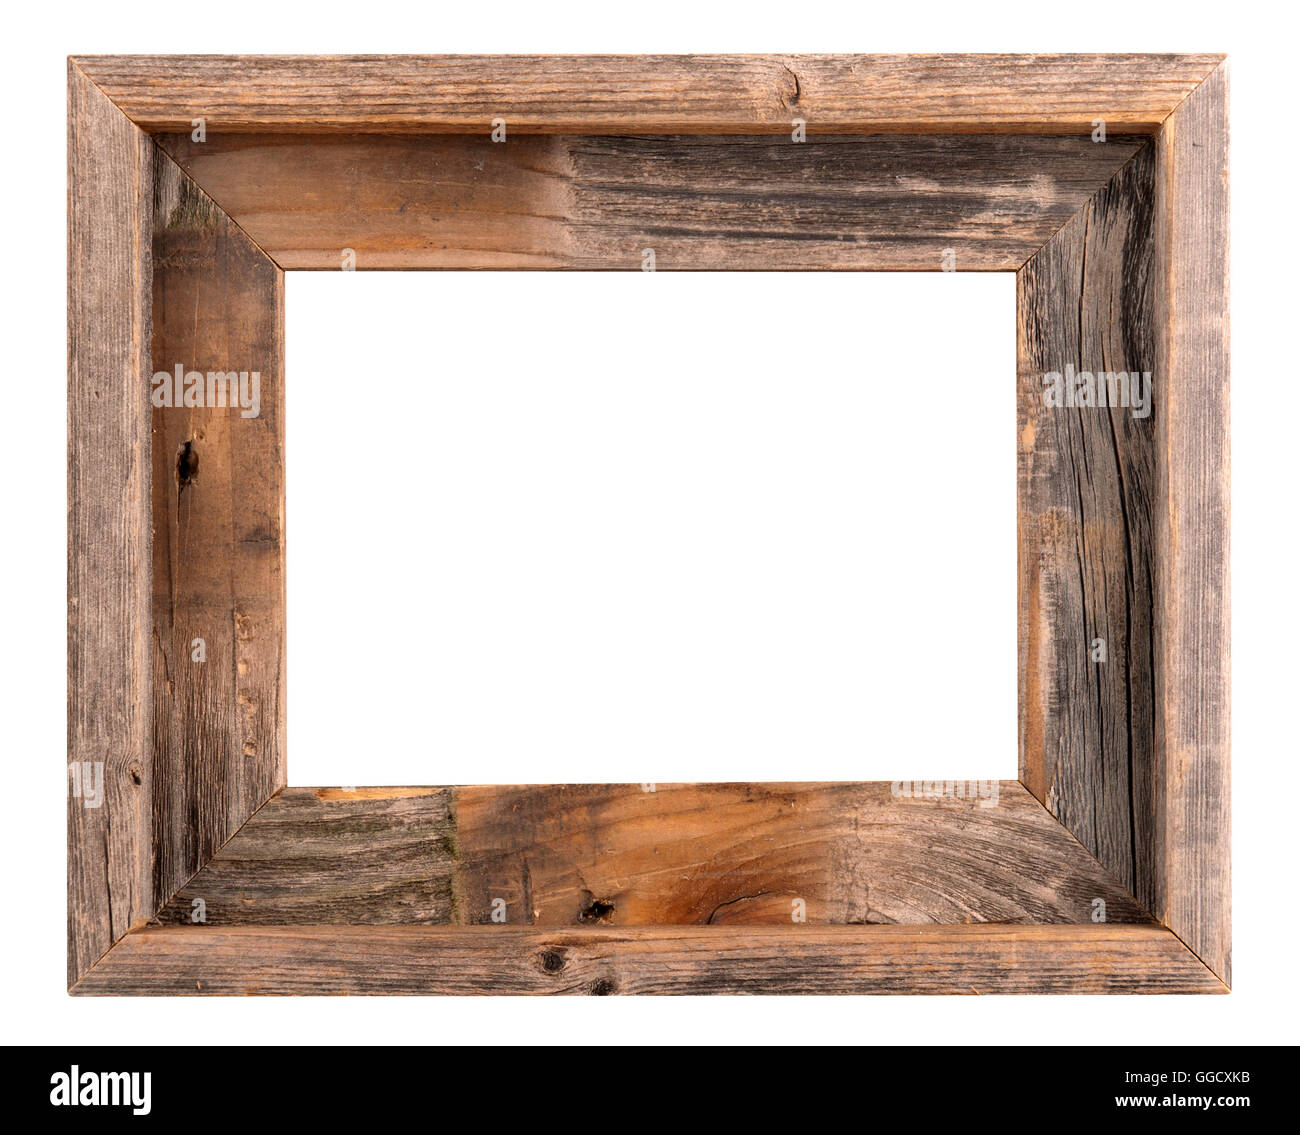 Barn Wood Cut Out Stock Images & Pictures - Alamy